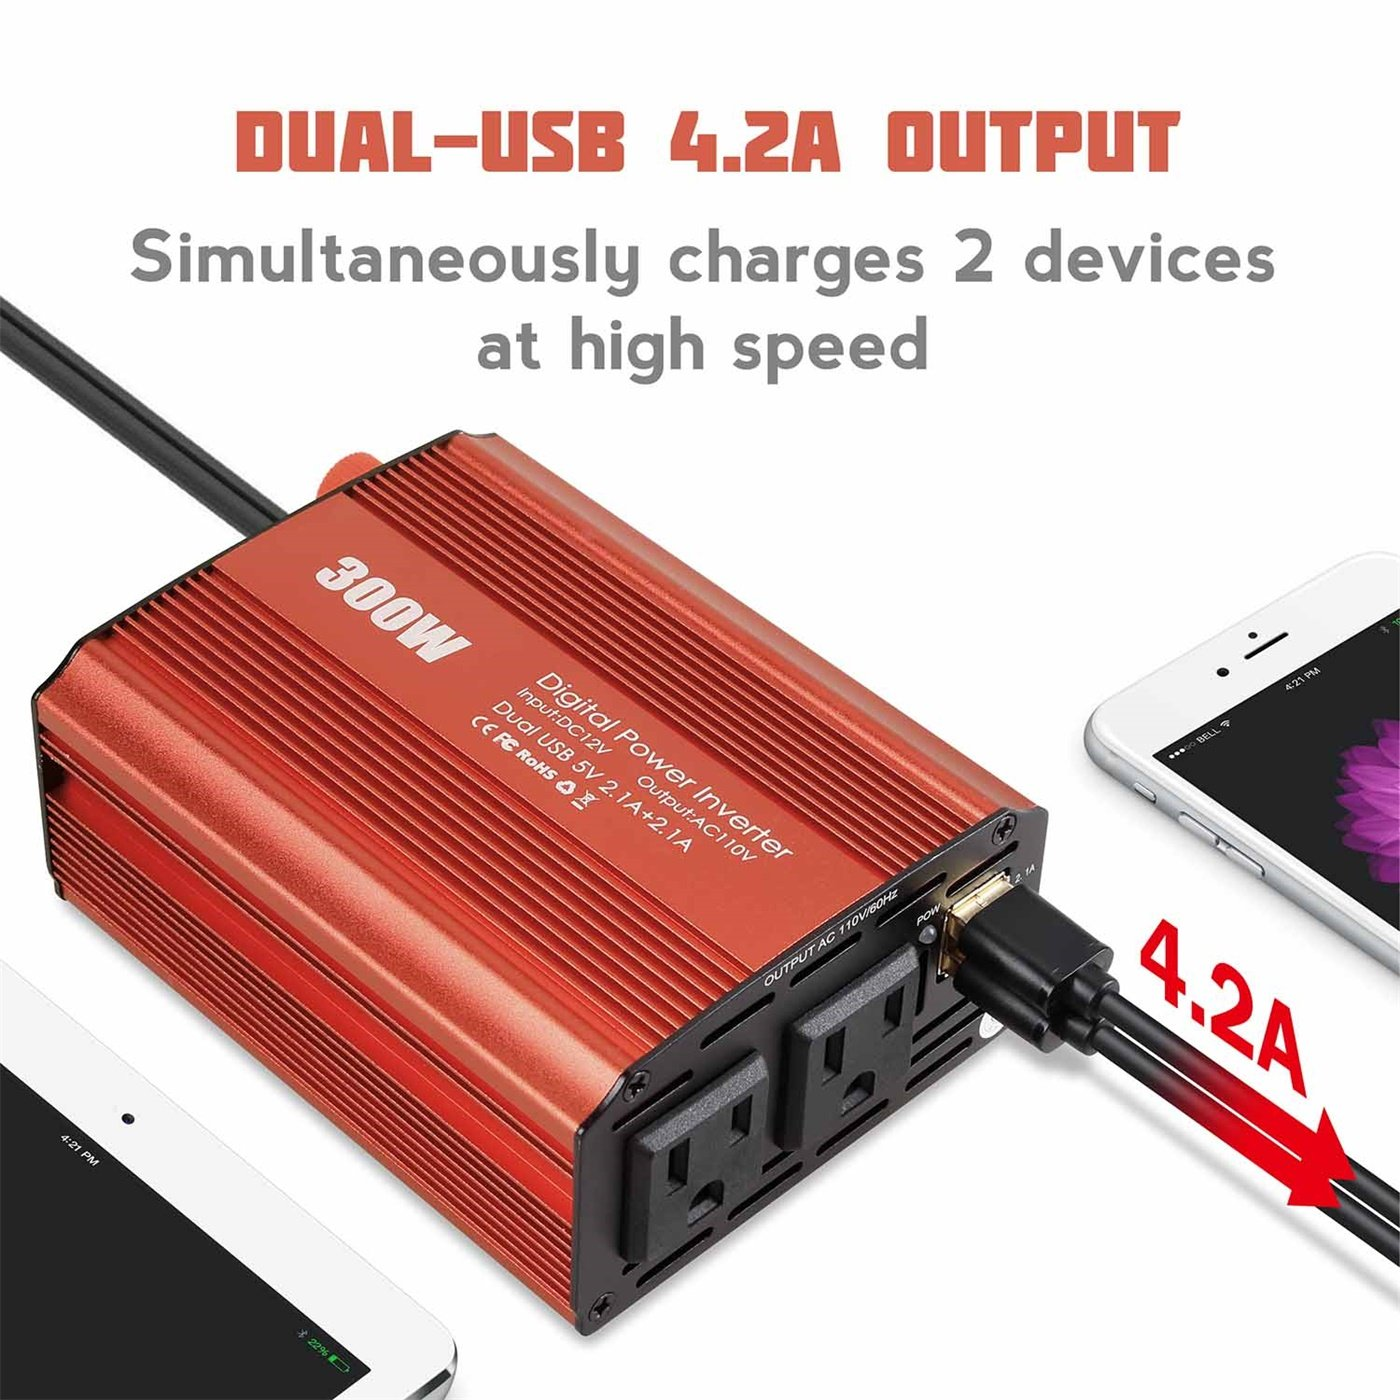 300W Dual 110V AC Outlets Power Inverter Car DC 12V to 110V AC Car Inverter with Dual USB Charging Ports by Etio (Image #2)